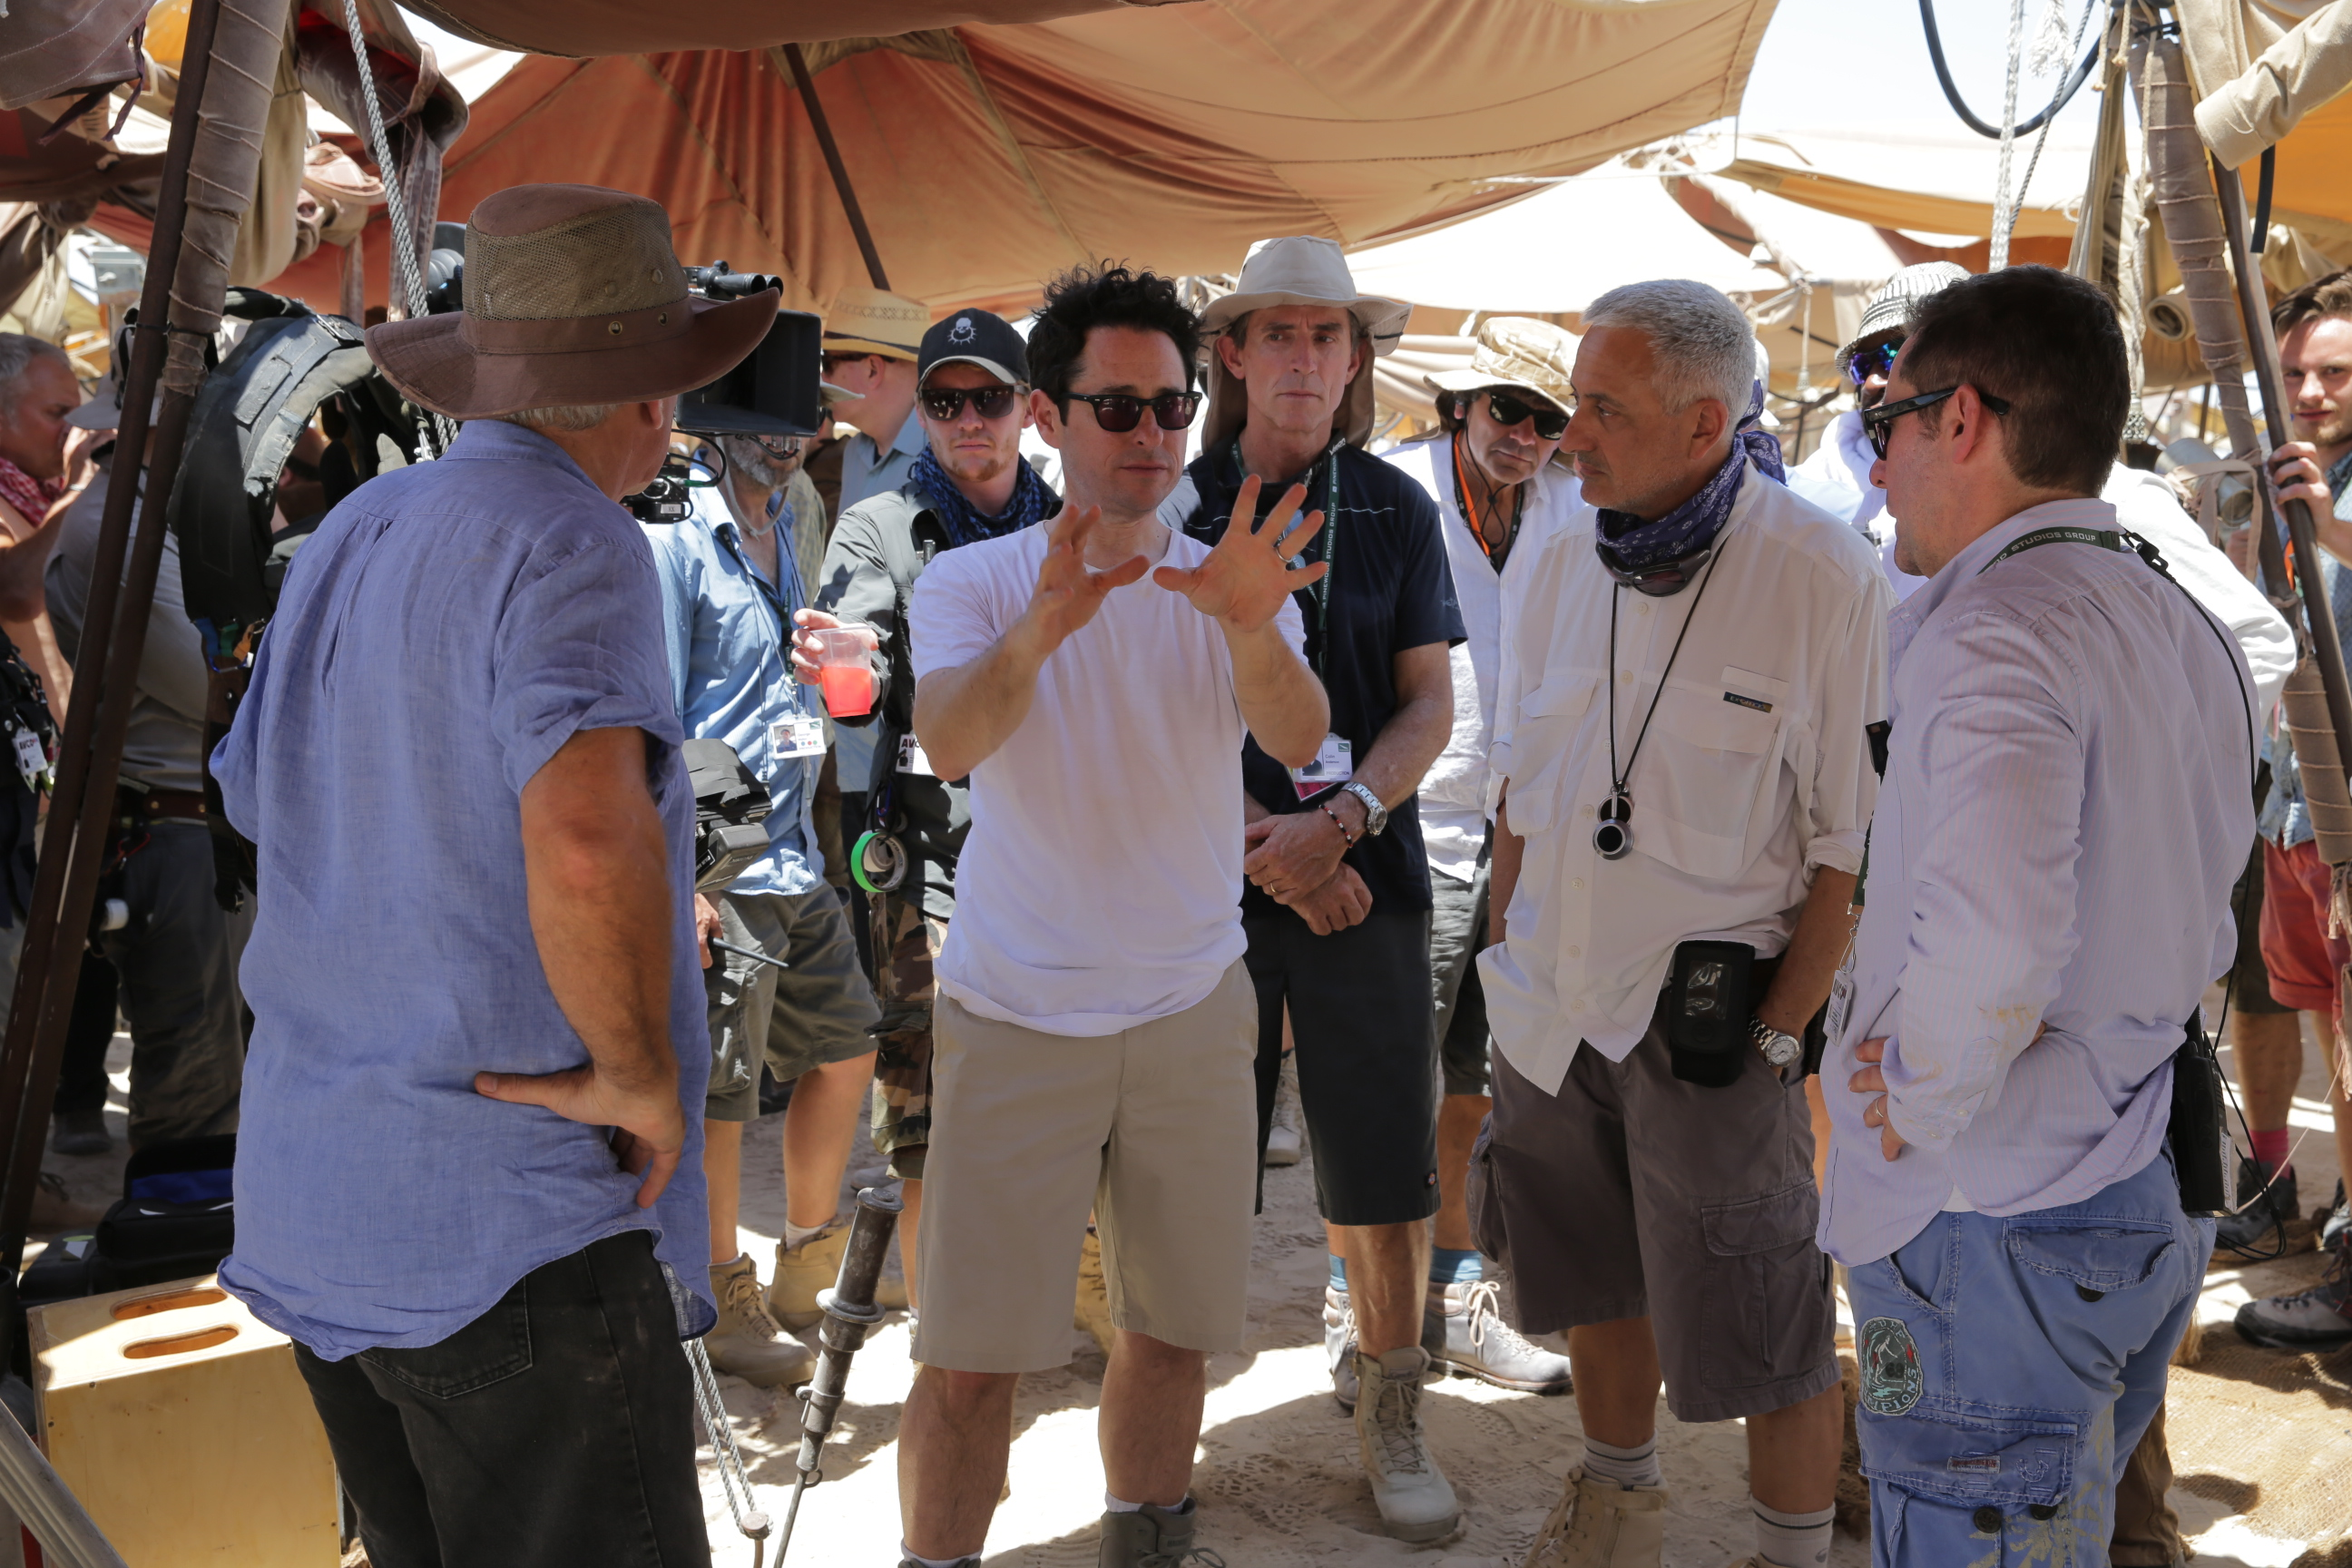 Star Wars: The Force Awakens Director J.J. Abrams on set Ph: David James © 2015 Lucasfilm Ltd. & TM. All Right Reserved..